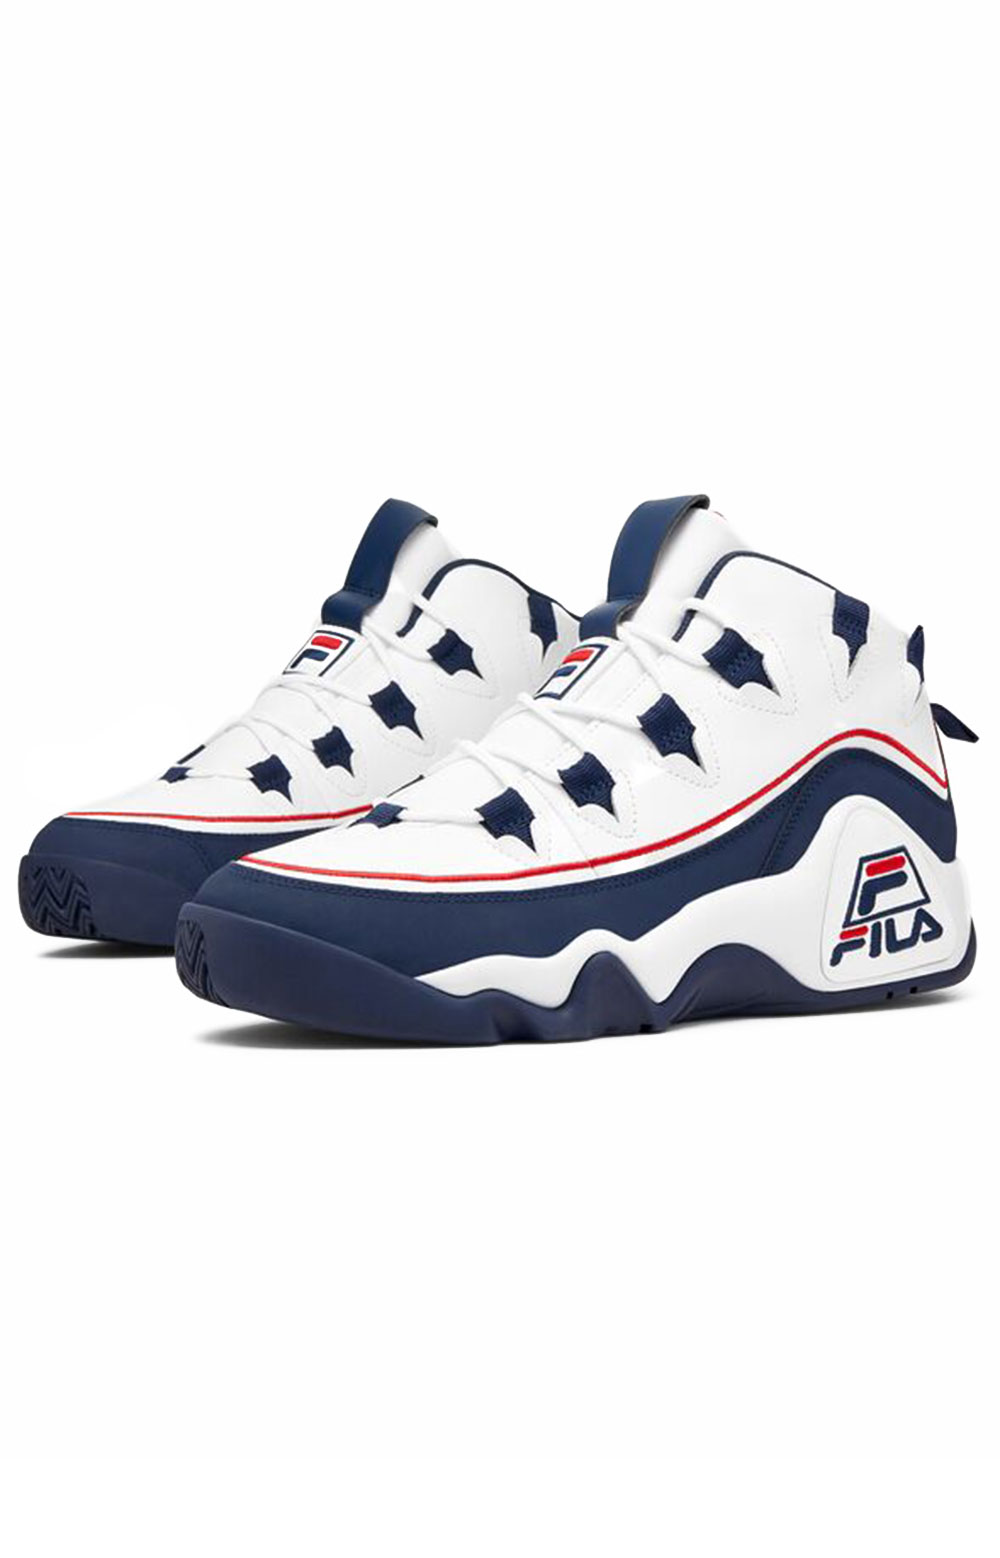 Grant Hill 1 Offset Shoes - White/Navy/Red  4